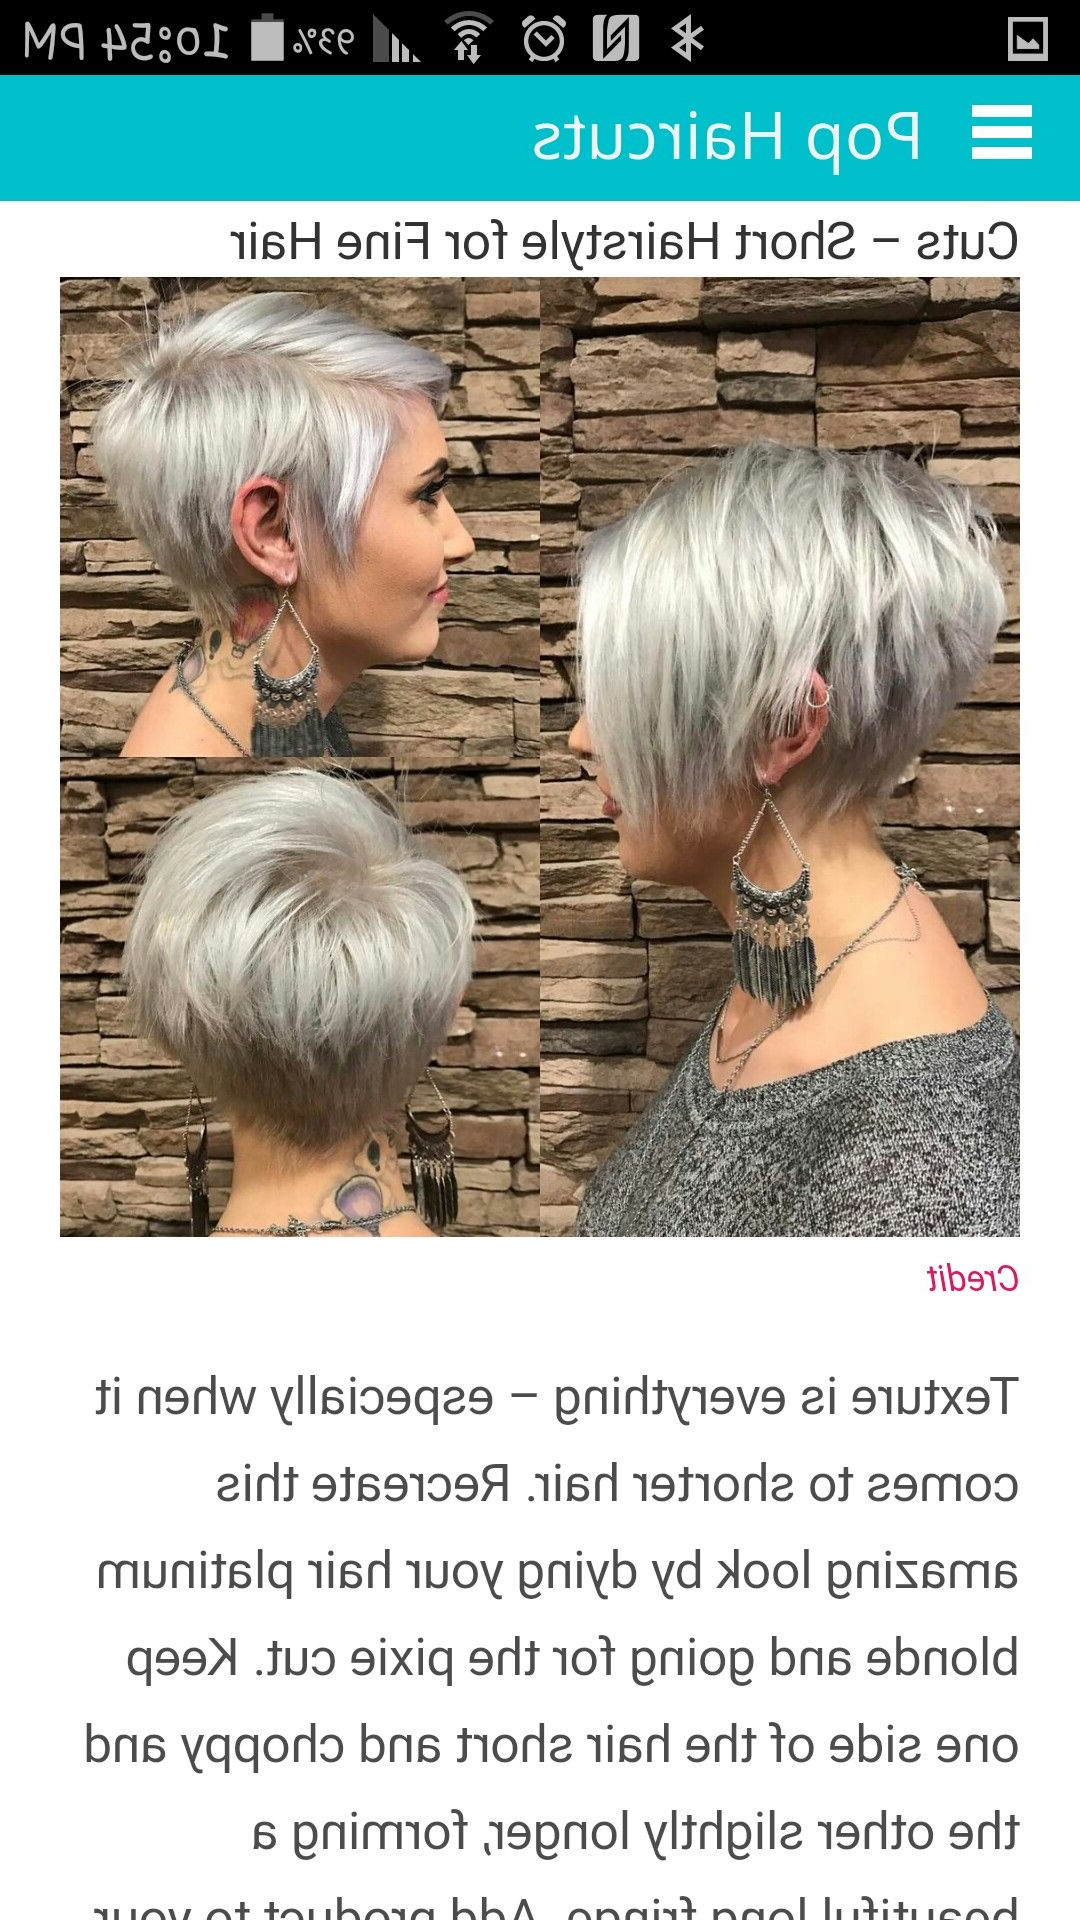 Recent Wavy Asymmetric Bob Hairstyles With Short Hair At One Side Pertaining To Pin On Hair (View 4 of 20)